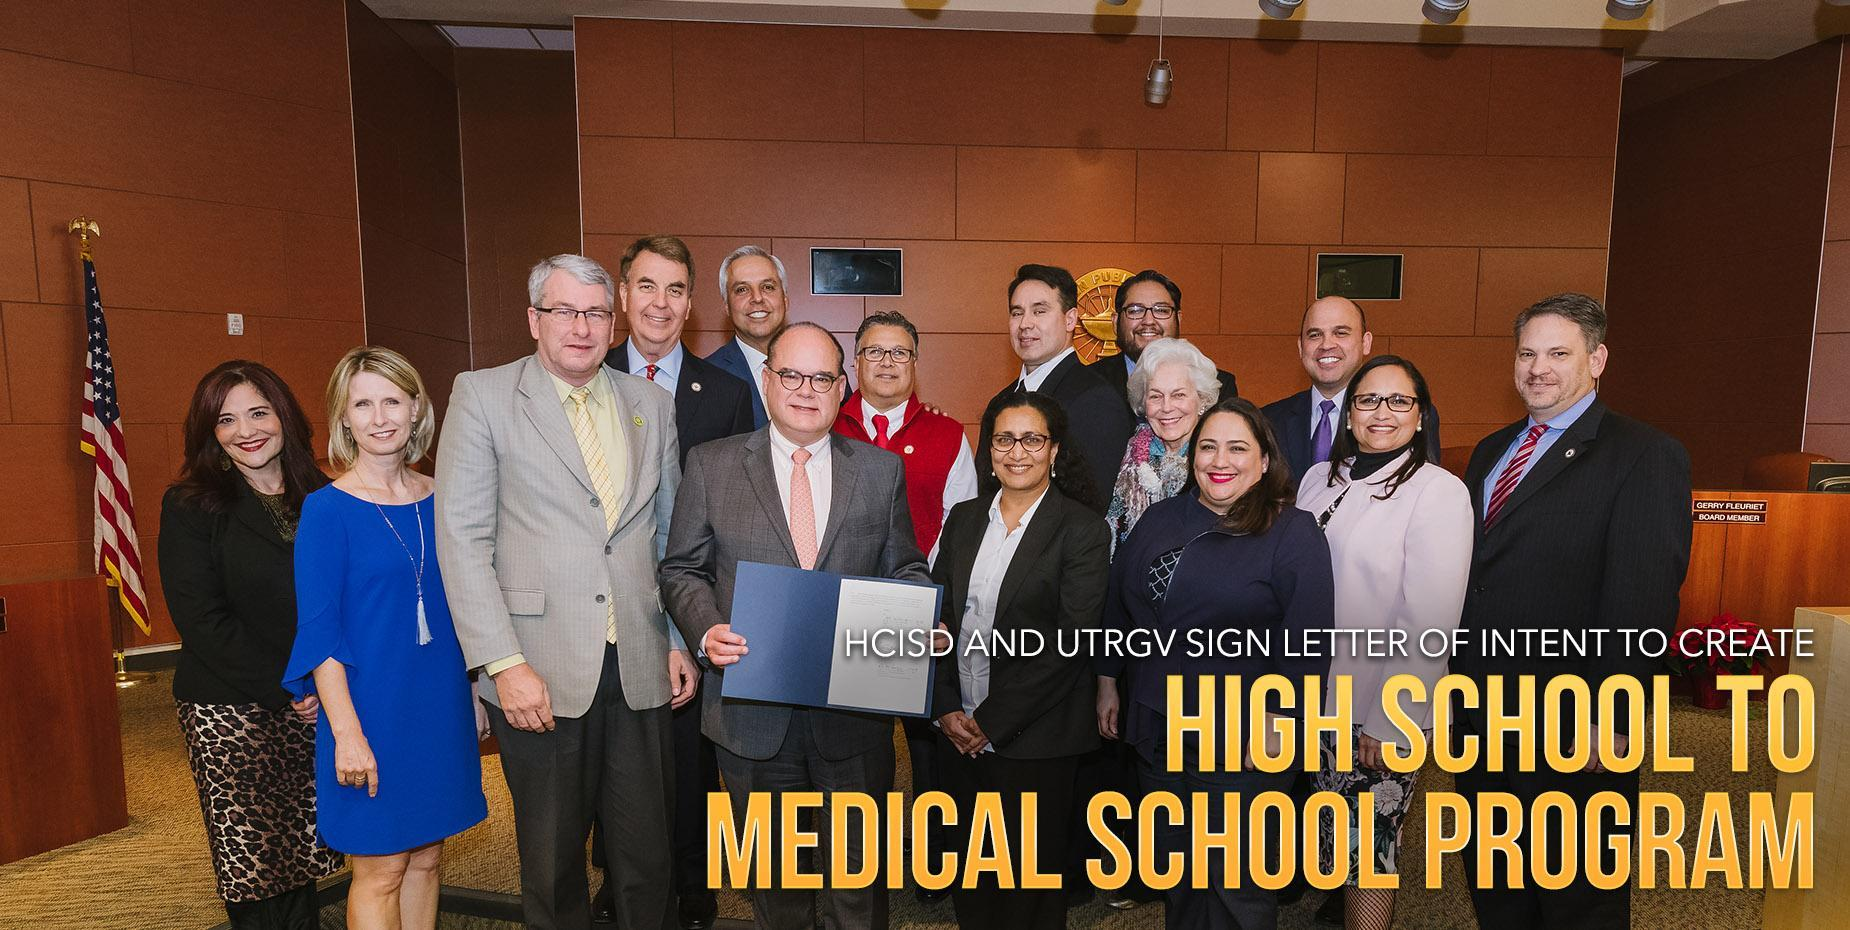 HCISD and UTRGV sign letter of intent to create high school to medical school program